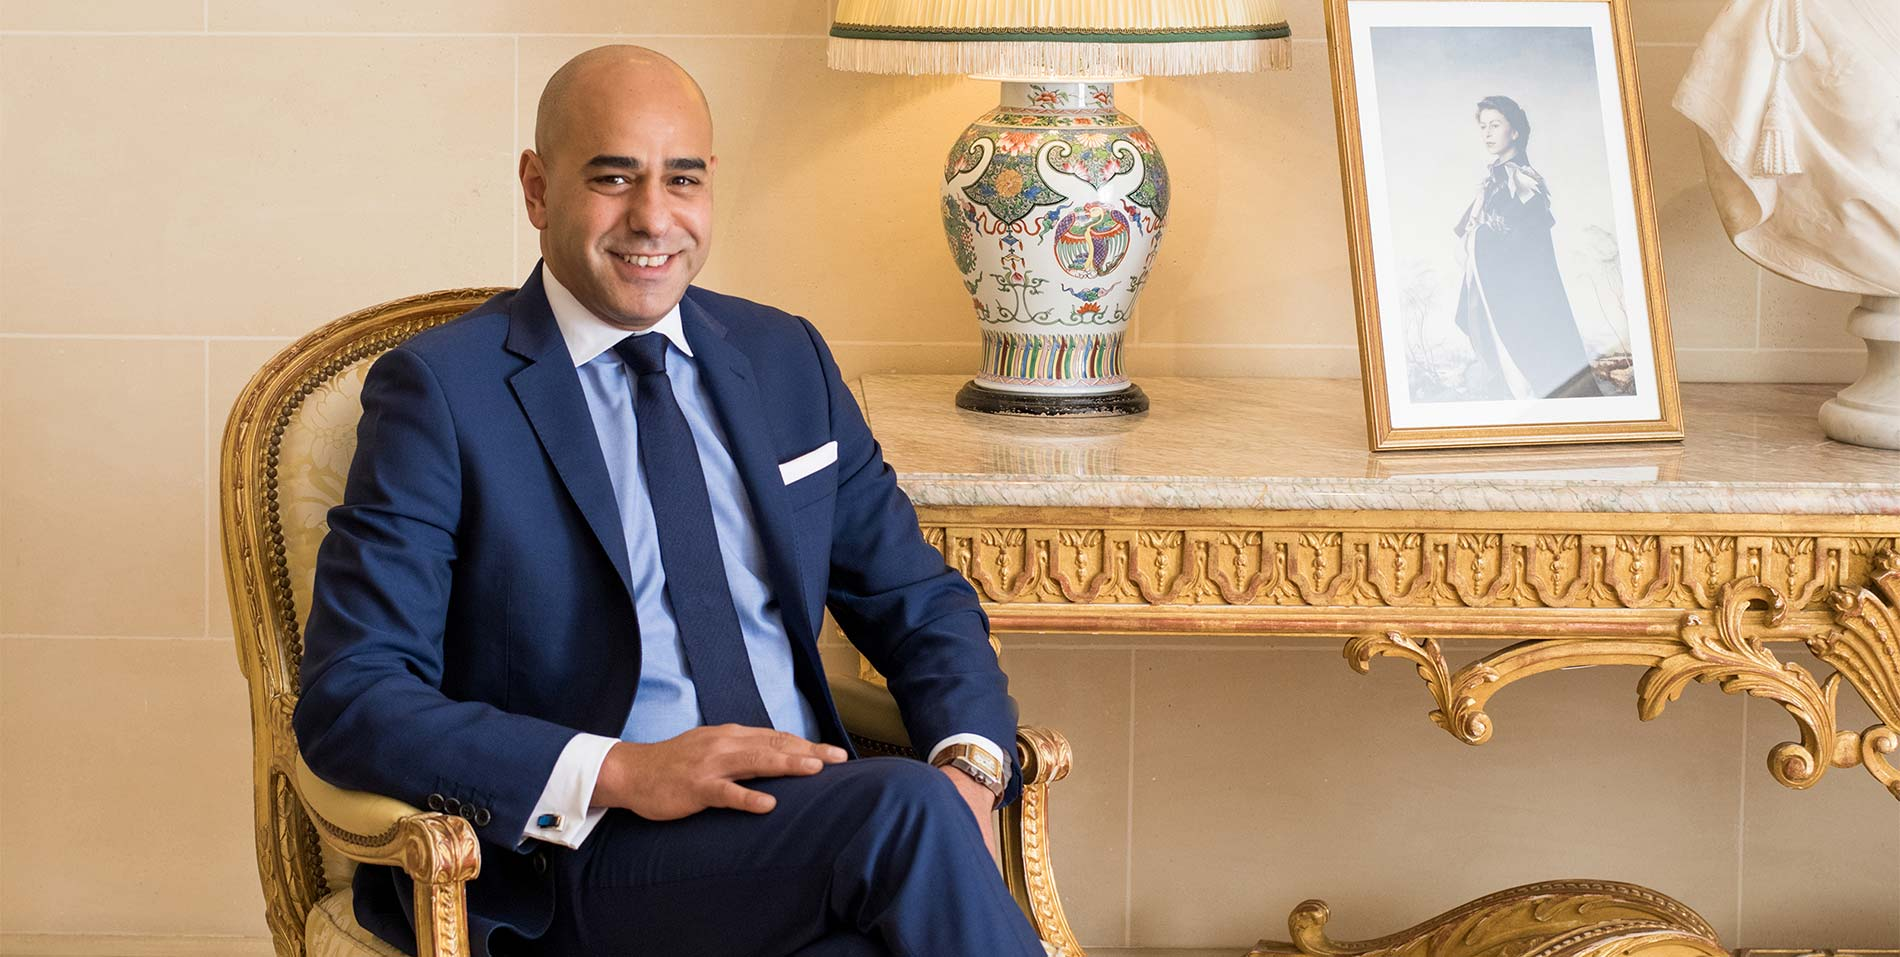 Sal Gowili GM of The Ritz